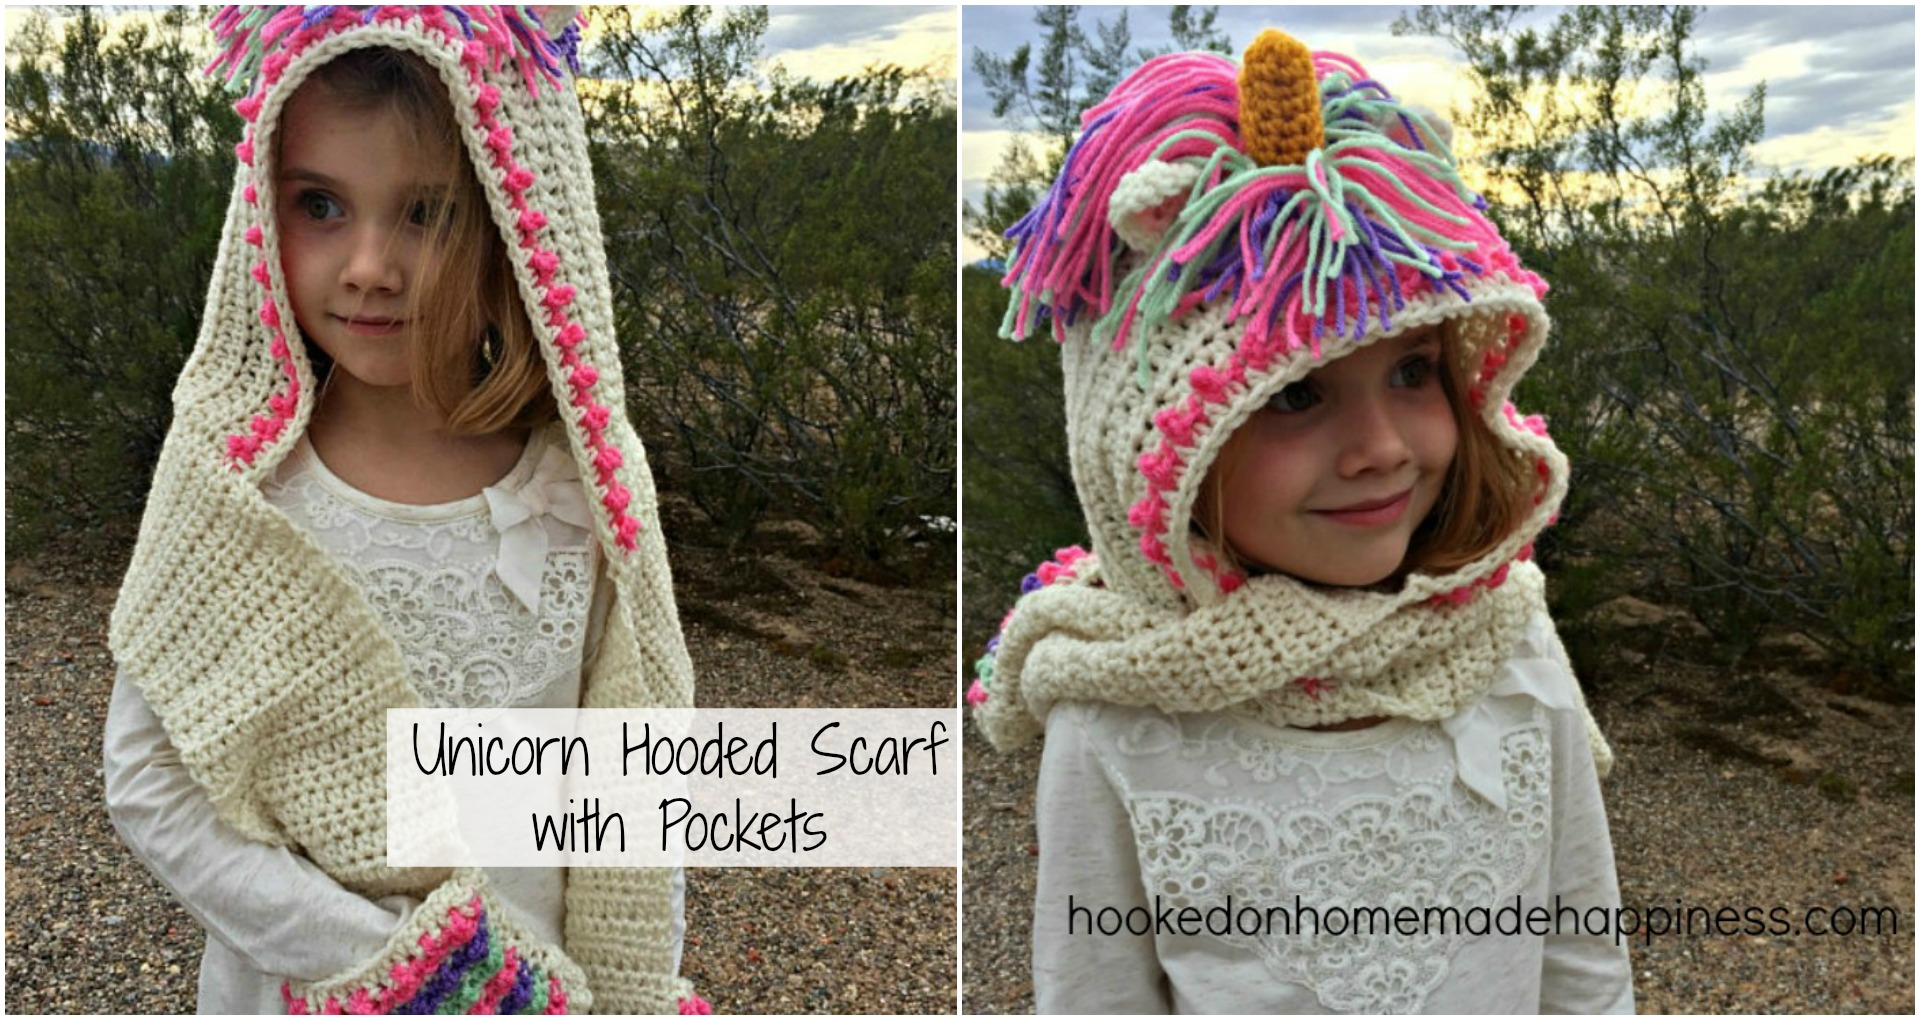 Unicorn Hooded Scarf Hooked On Homemade Happiness